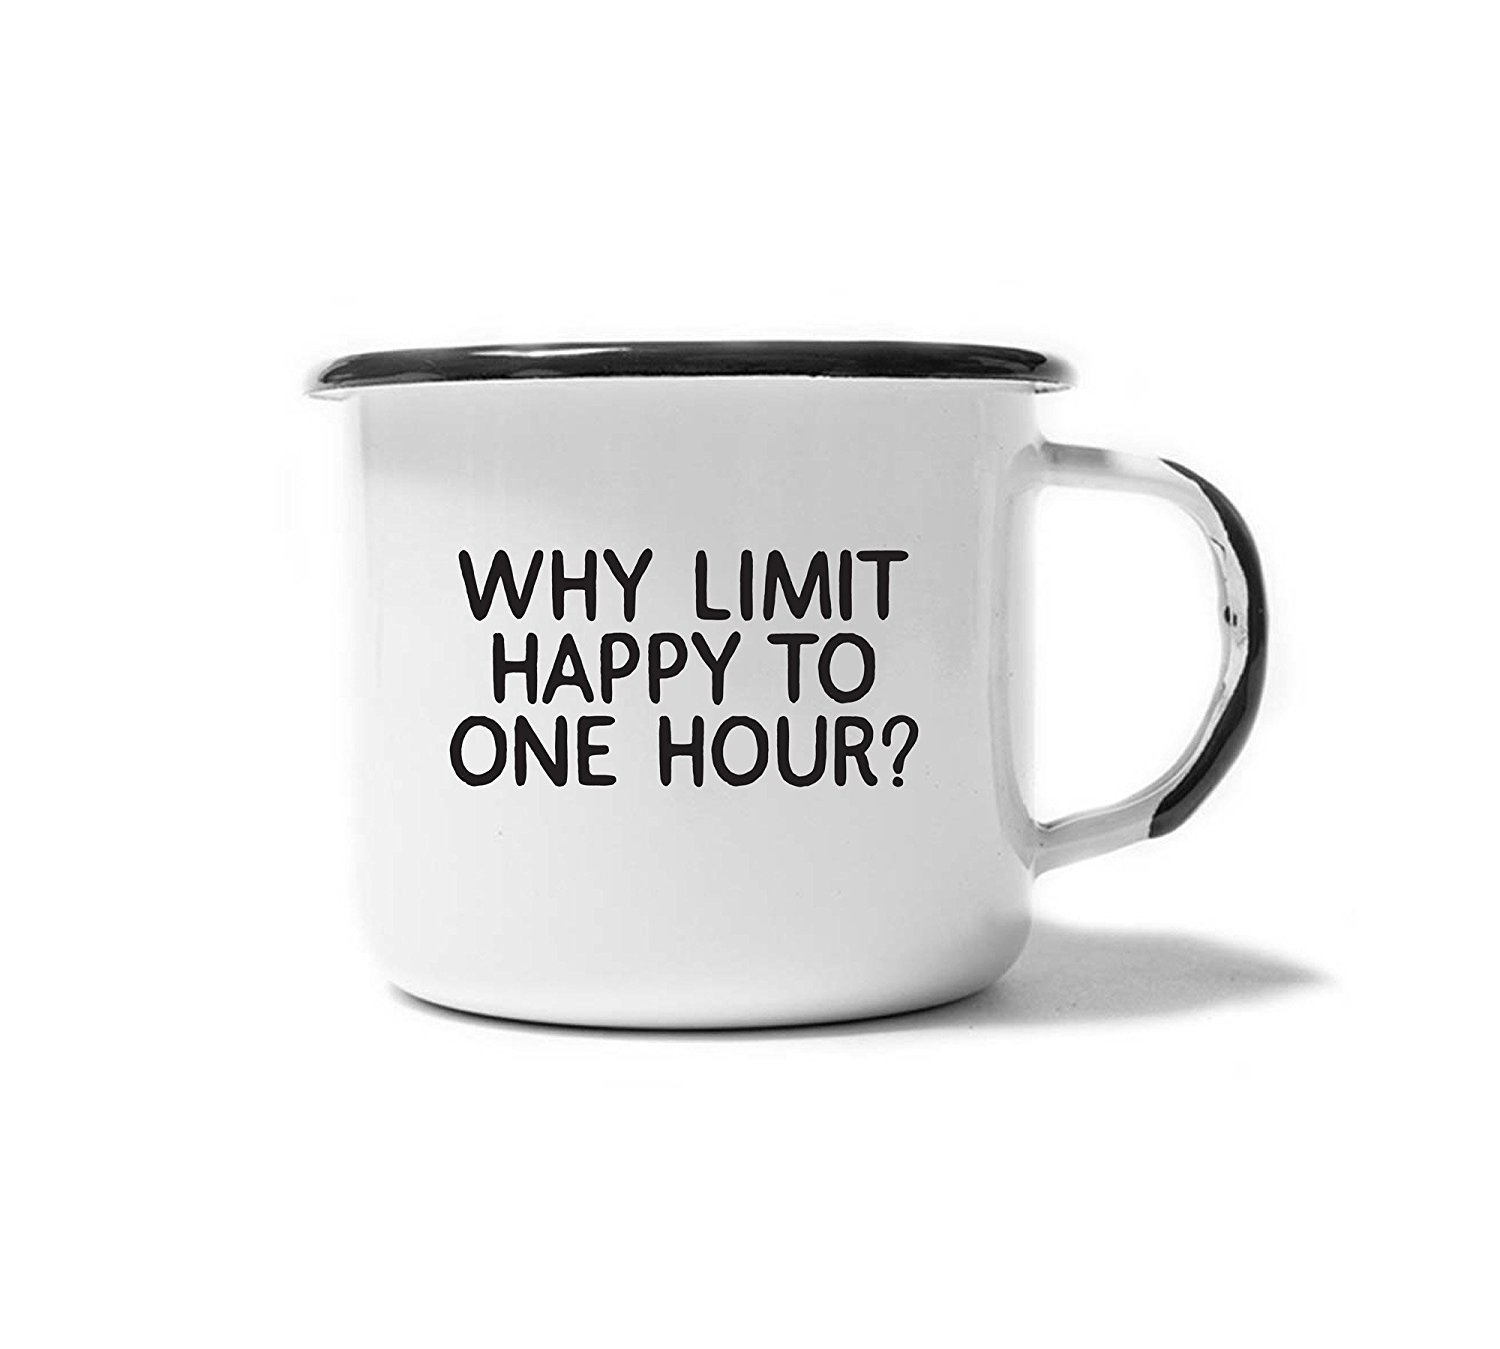 Why Limit Happy to One Hour